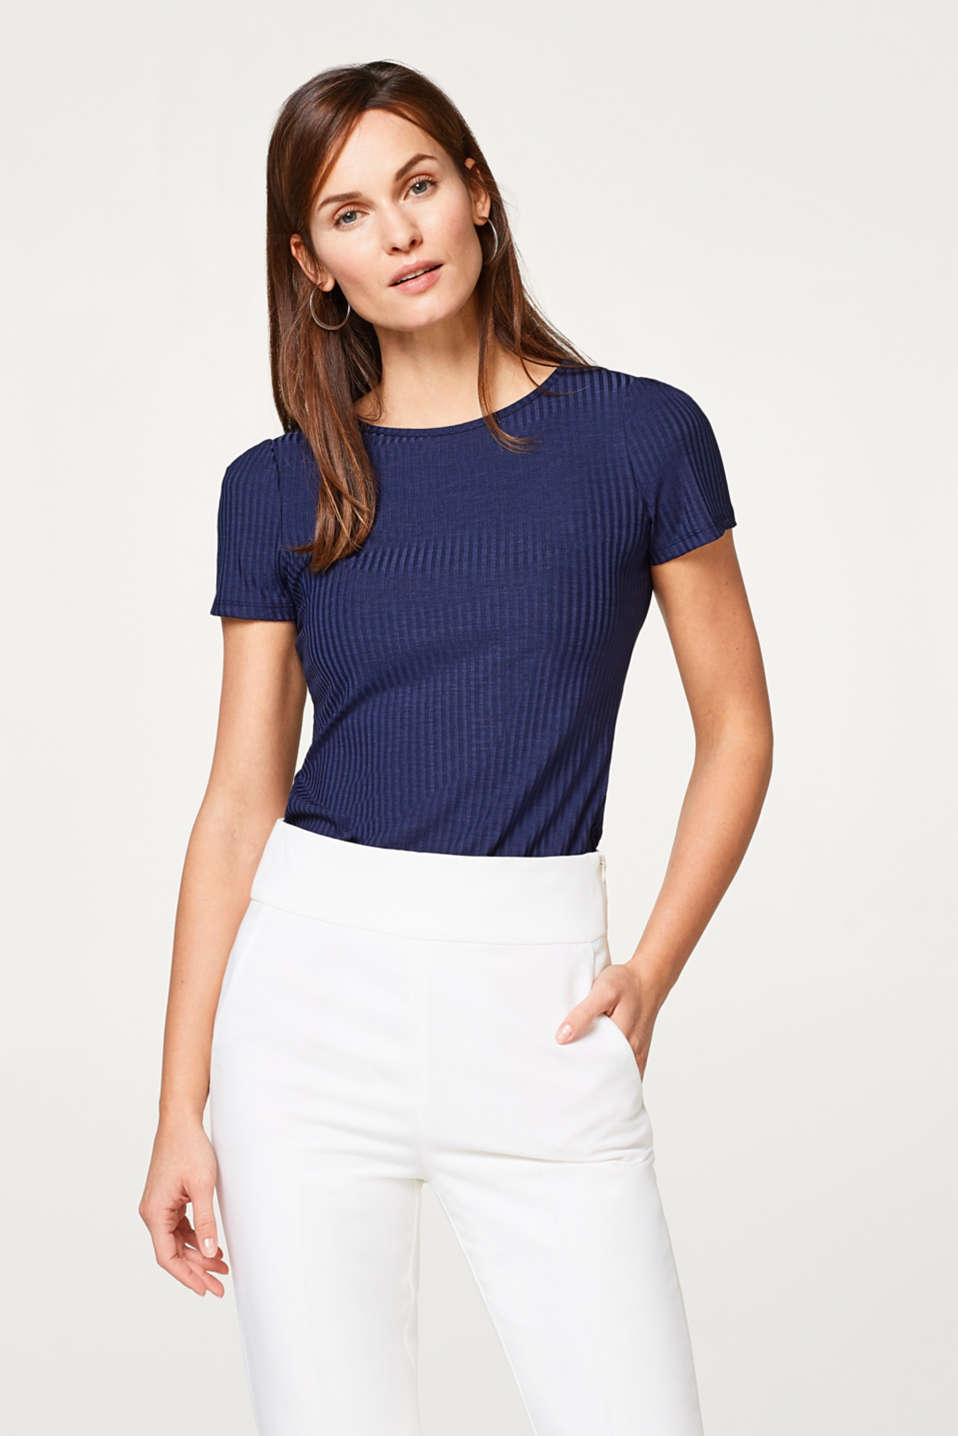 Esprit - Fitted stretch top with a ribbed texture